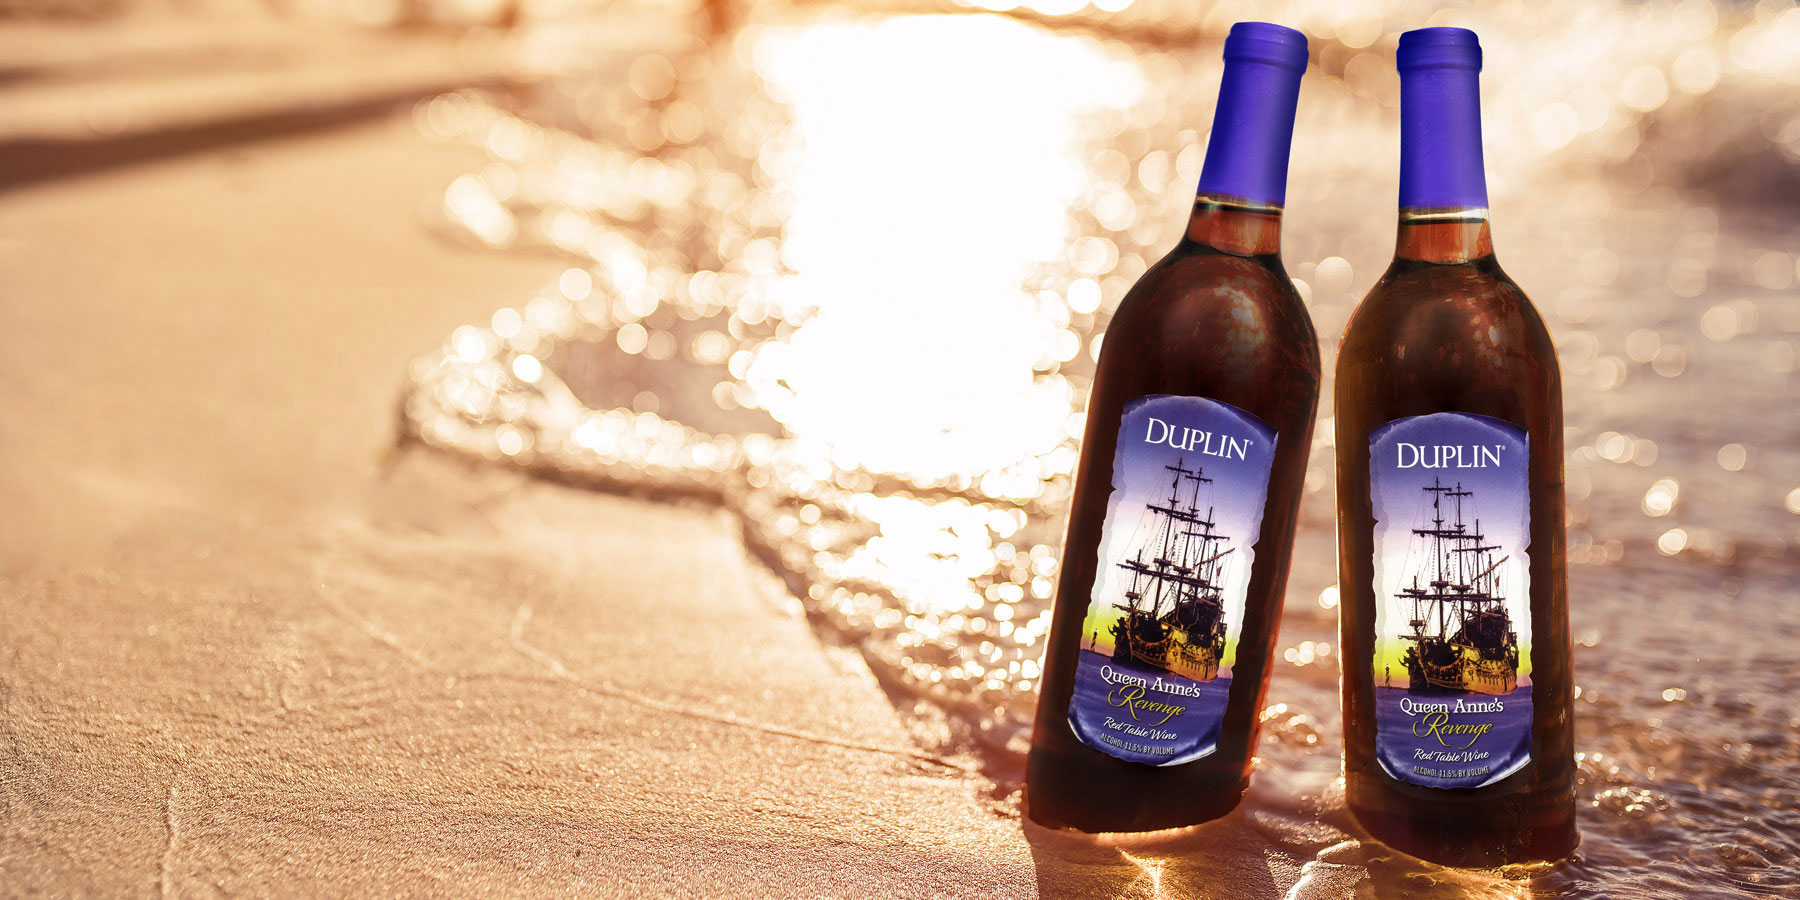 Duplin Winery Queen Anne's Revenge only shows up once a year.